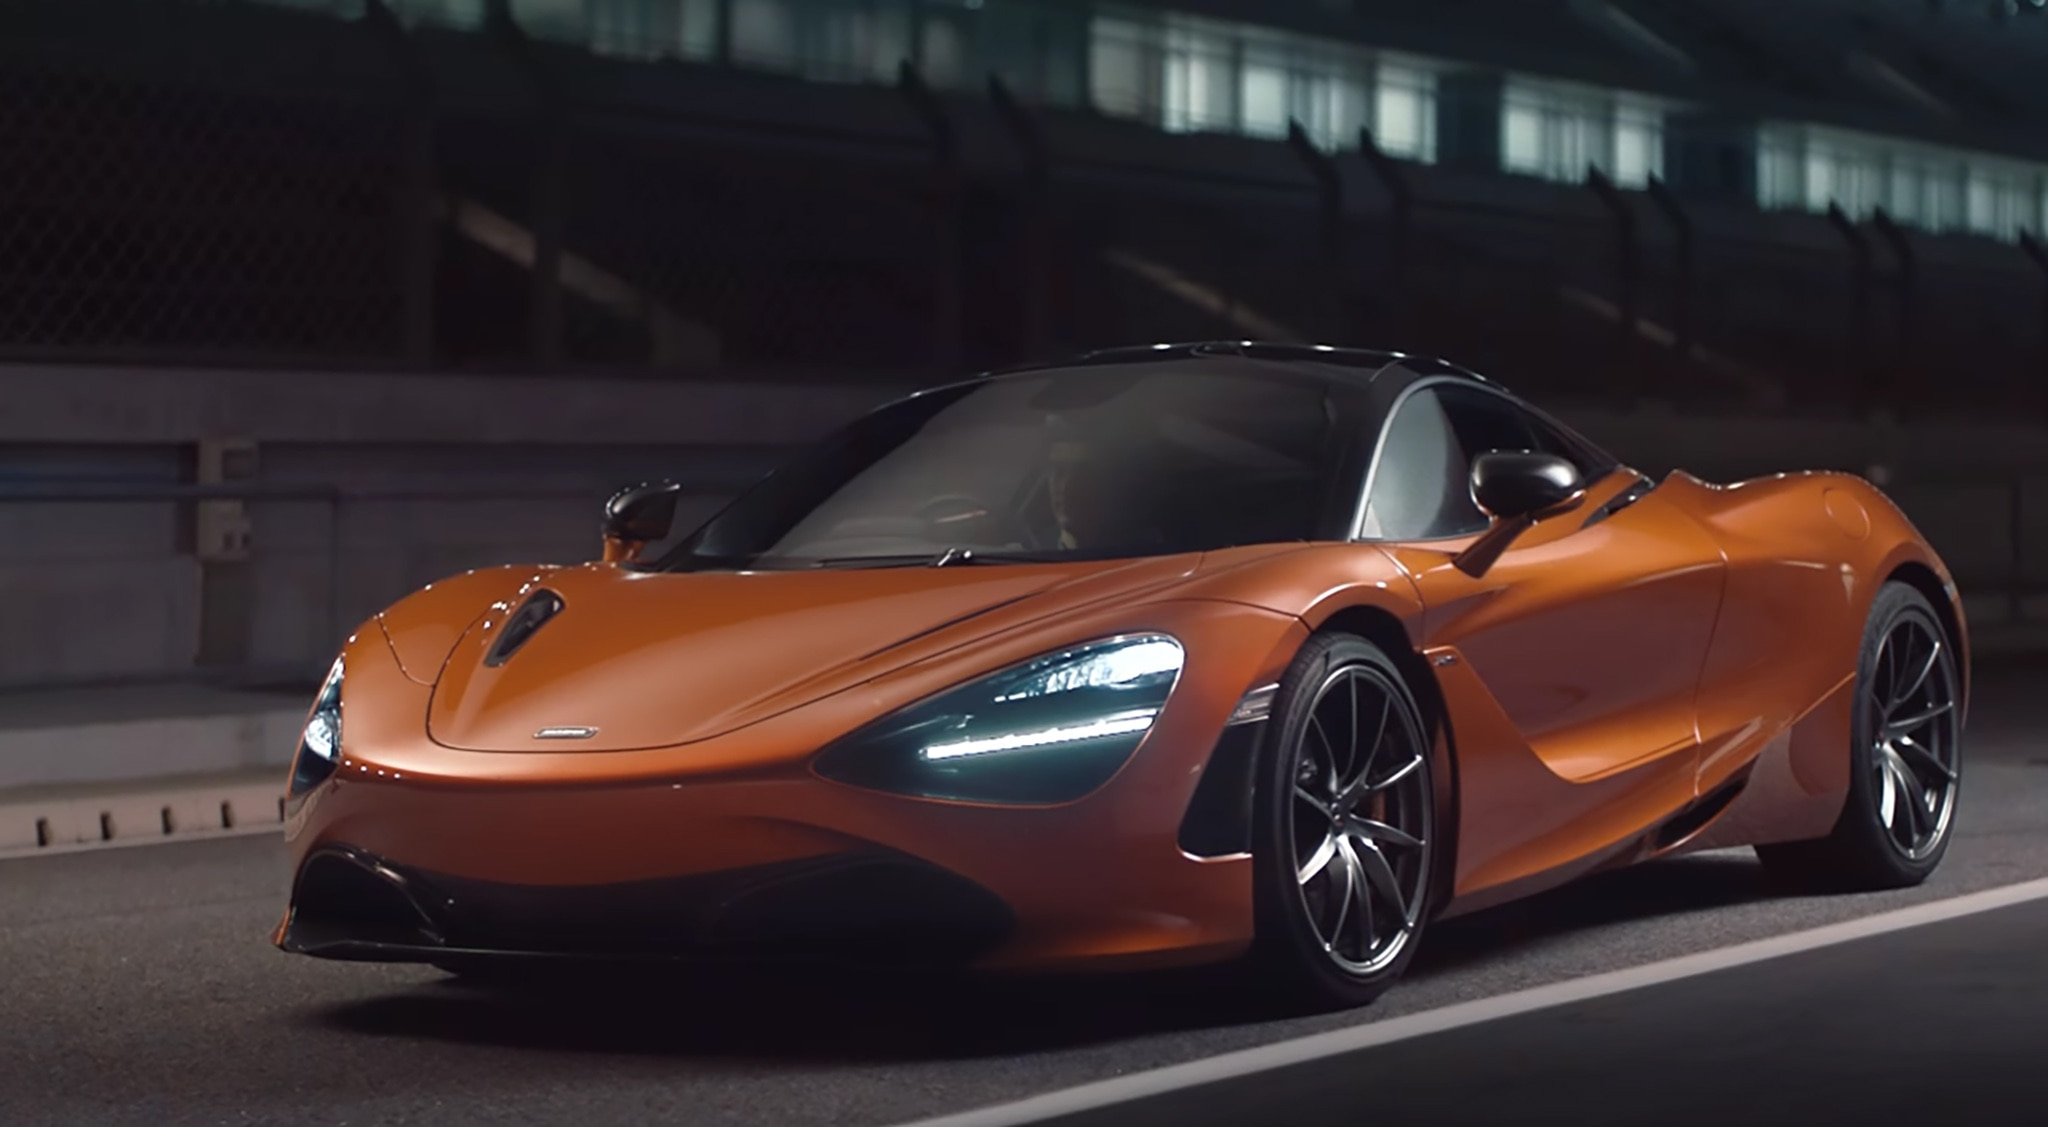 McLaren 720S Raise Your Limits